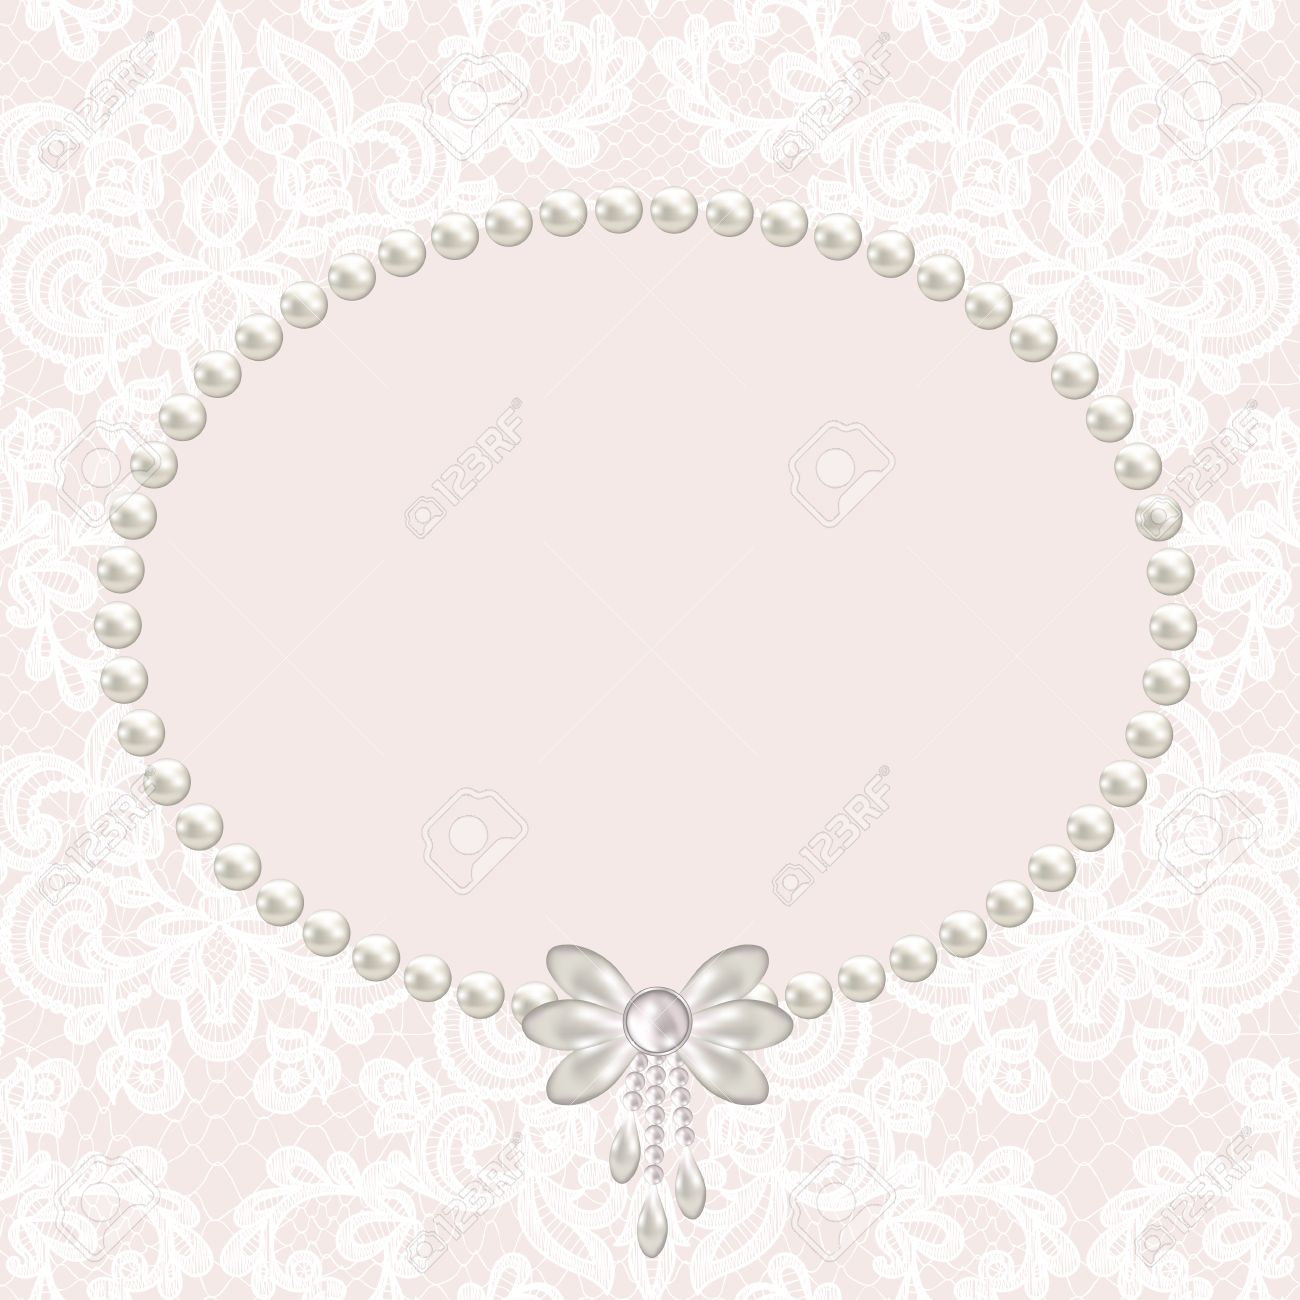 wedding invitation or greeting card with pearl frame on lace